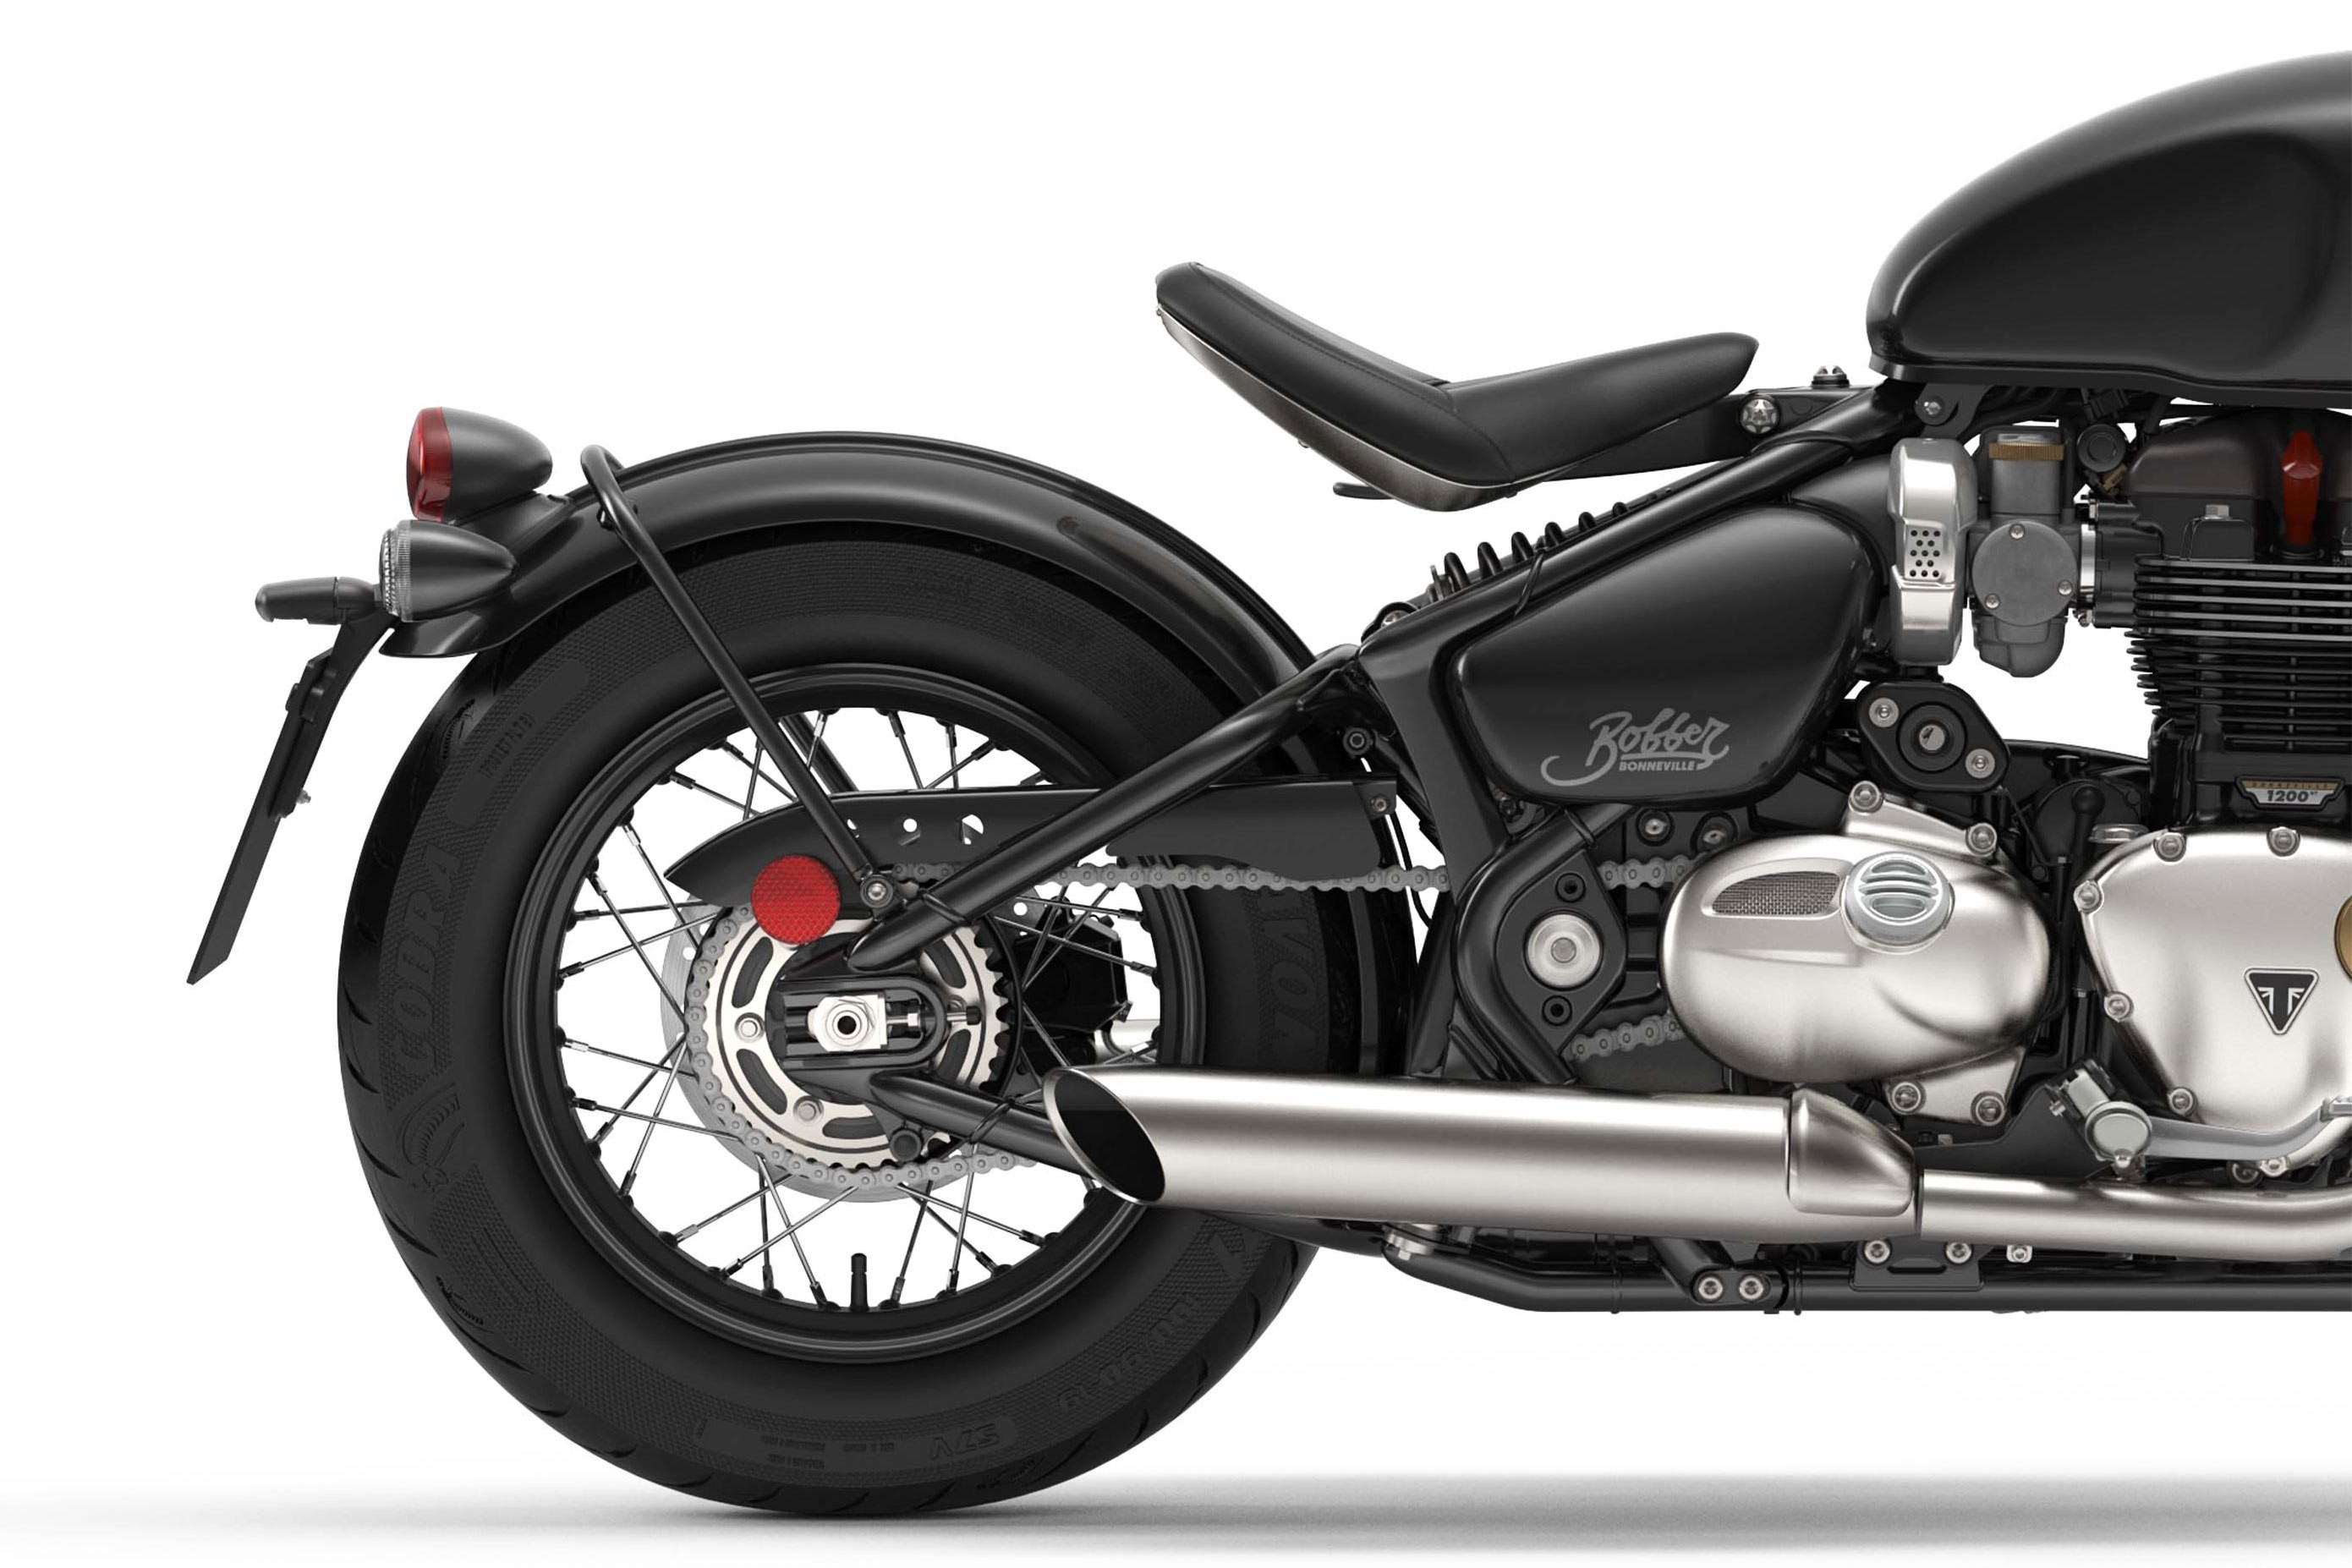 Res: 2781x1854, Triumph Bonneville Bobber Images, Photos, Hd Wallpapers